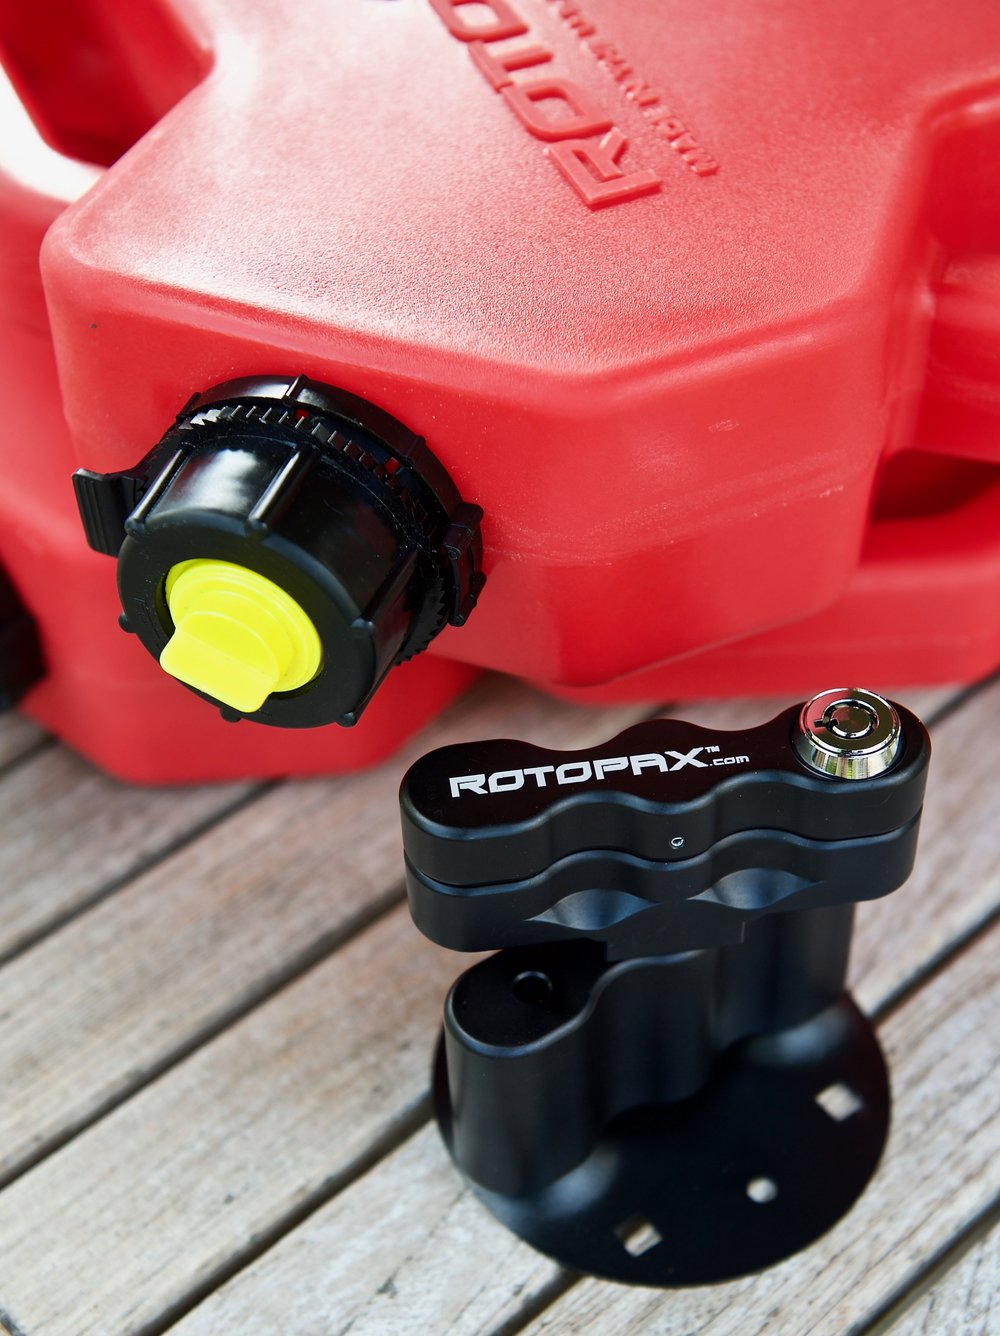 RotoPax 2 Gal. fuel pack and Lox mount.